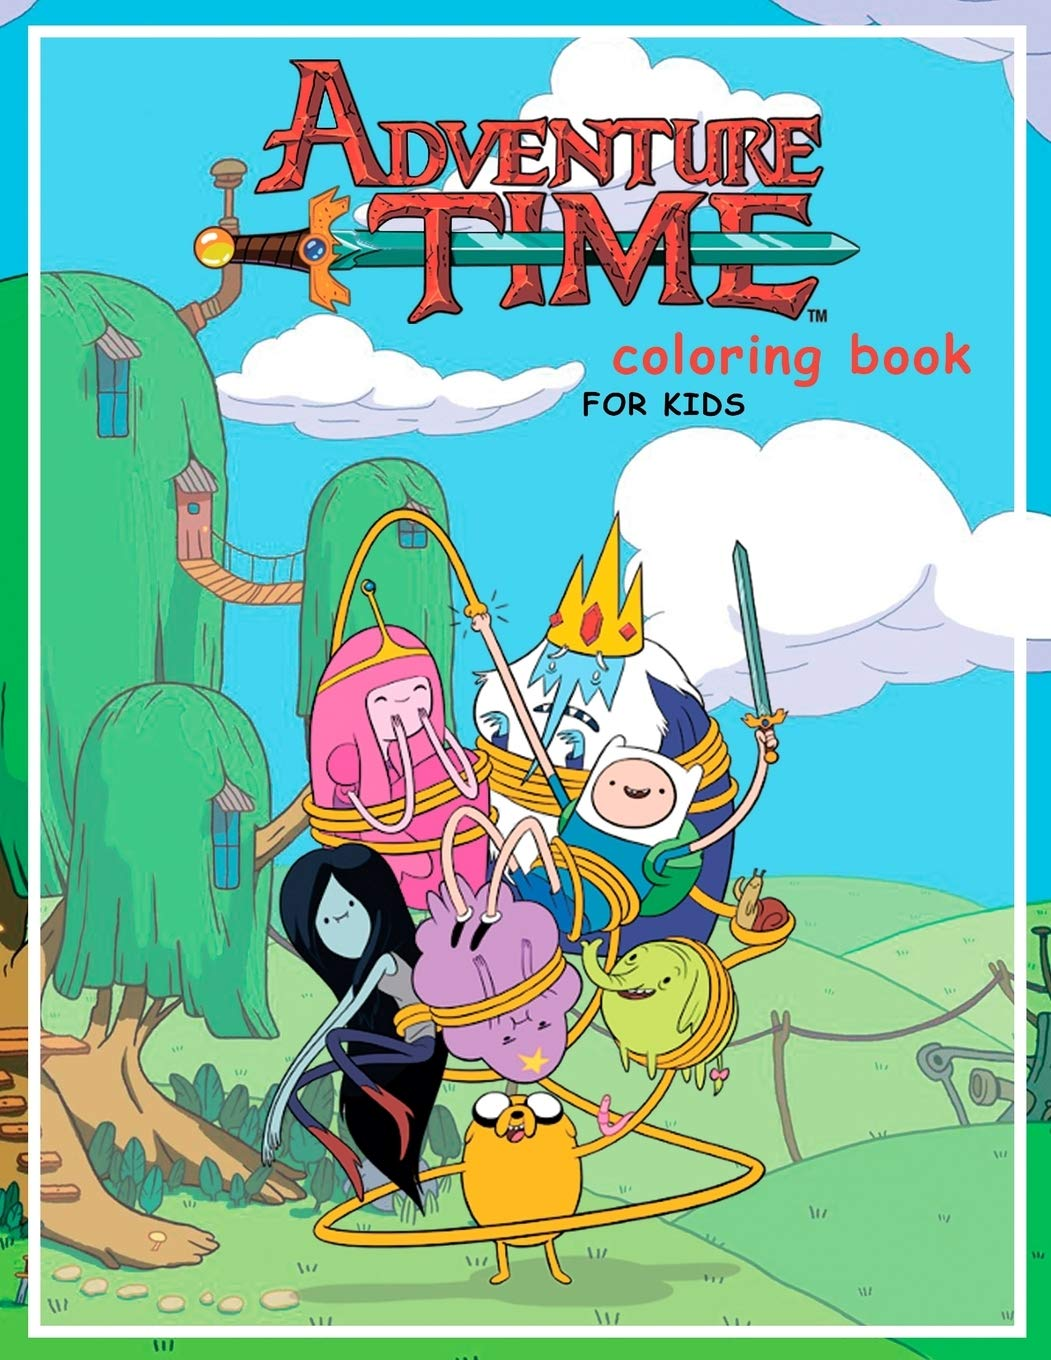 - Adventure Time Coloring Book For Kids: 20 Coloring Pages Of Your